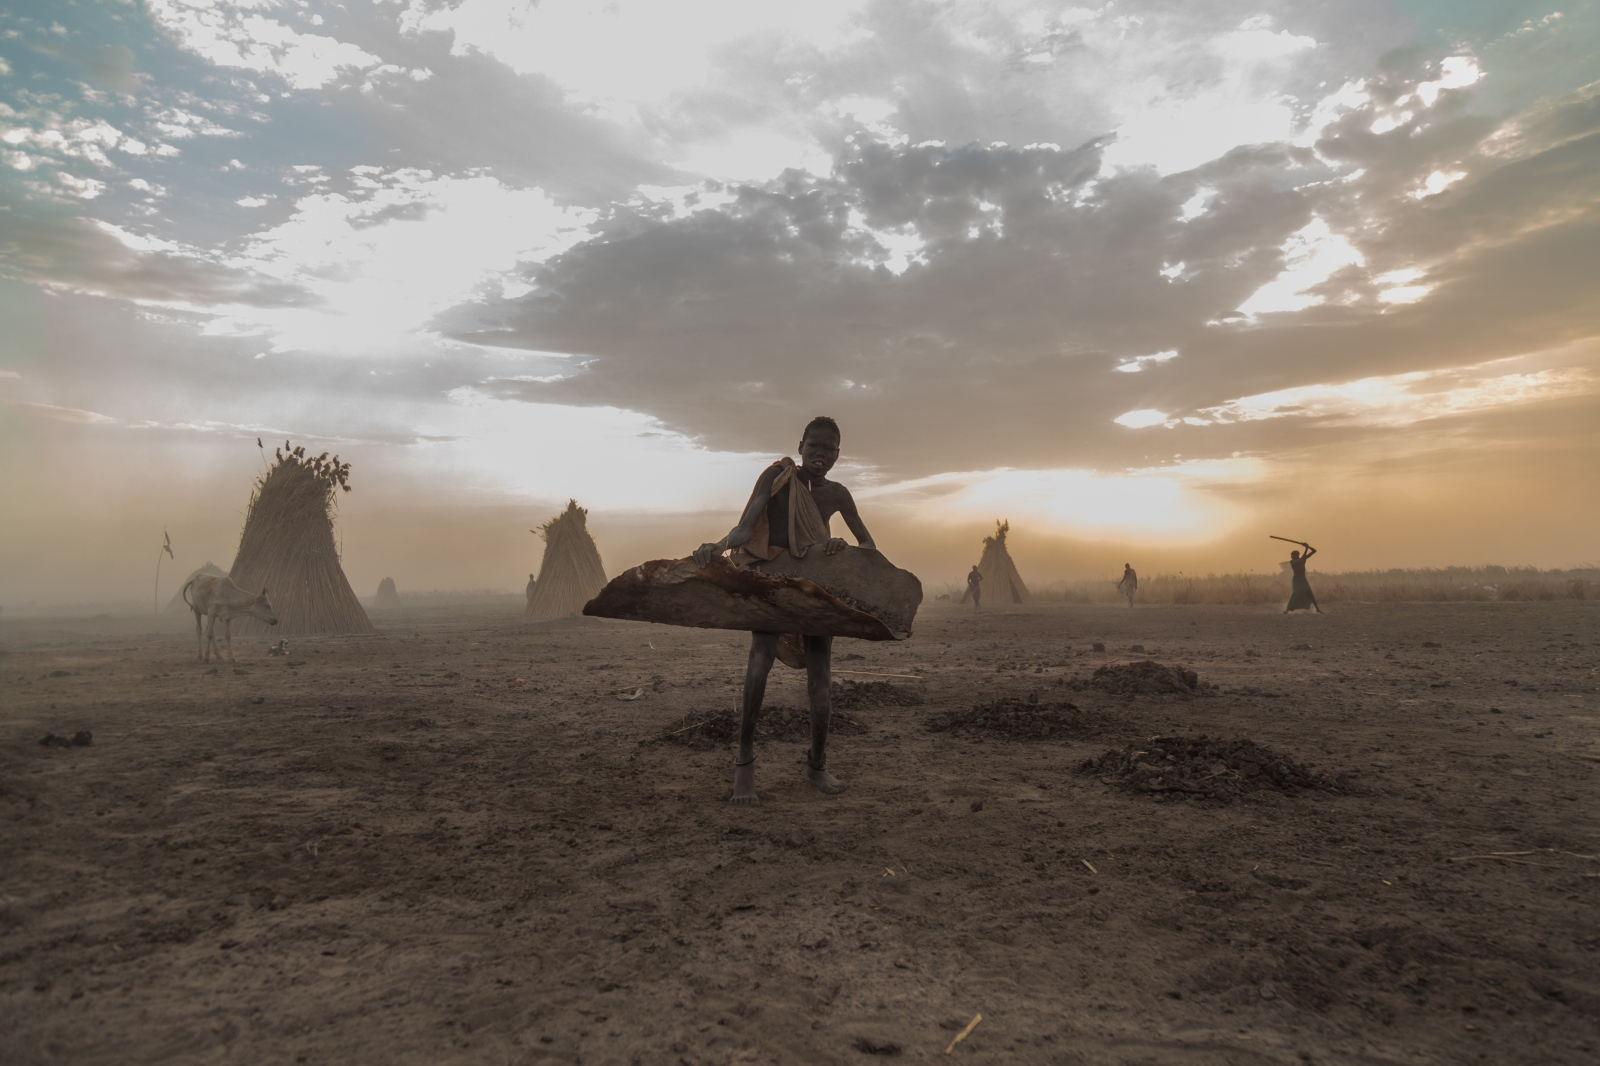 Photography image - A mundari boy collecting dung from cows at a cattle camp in South Sudan.